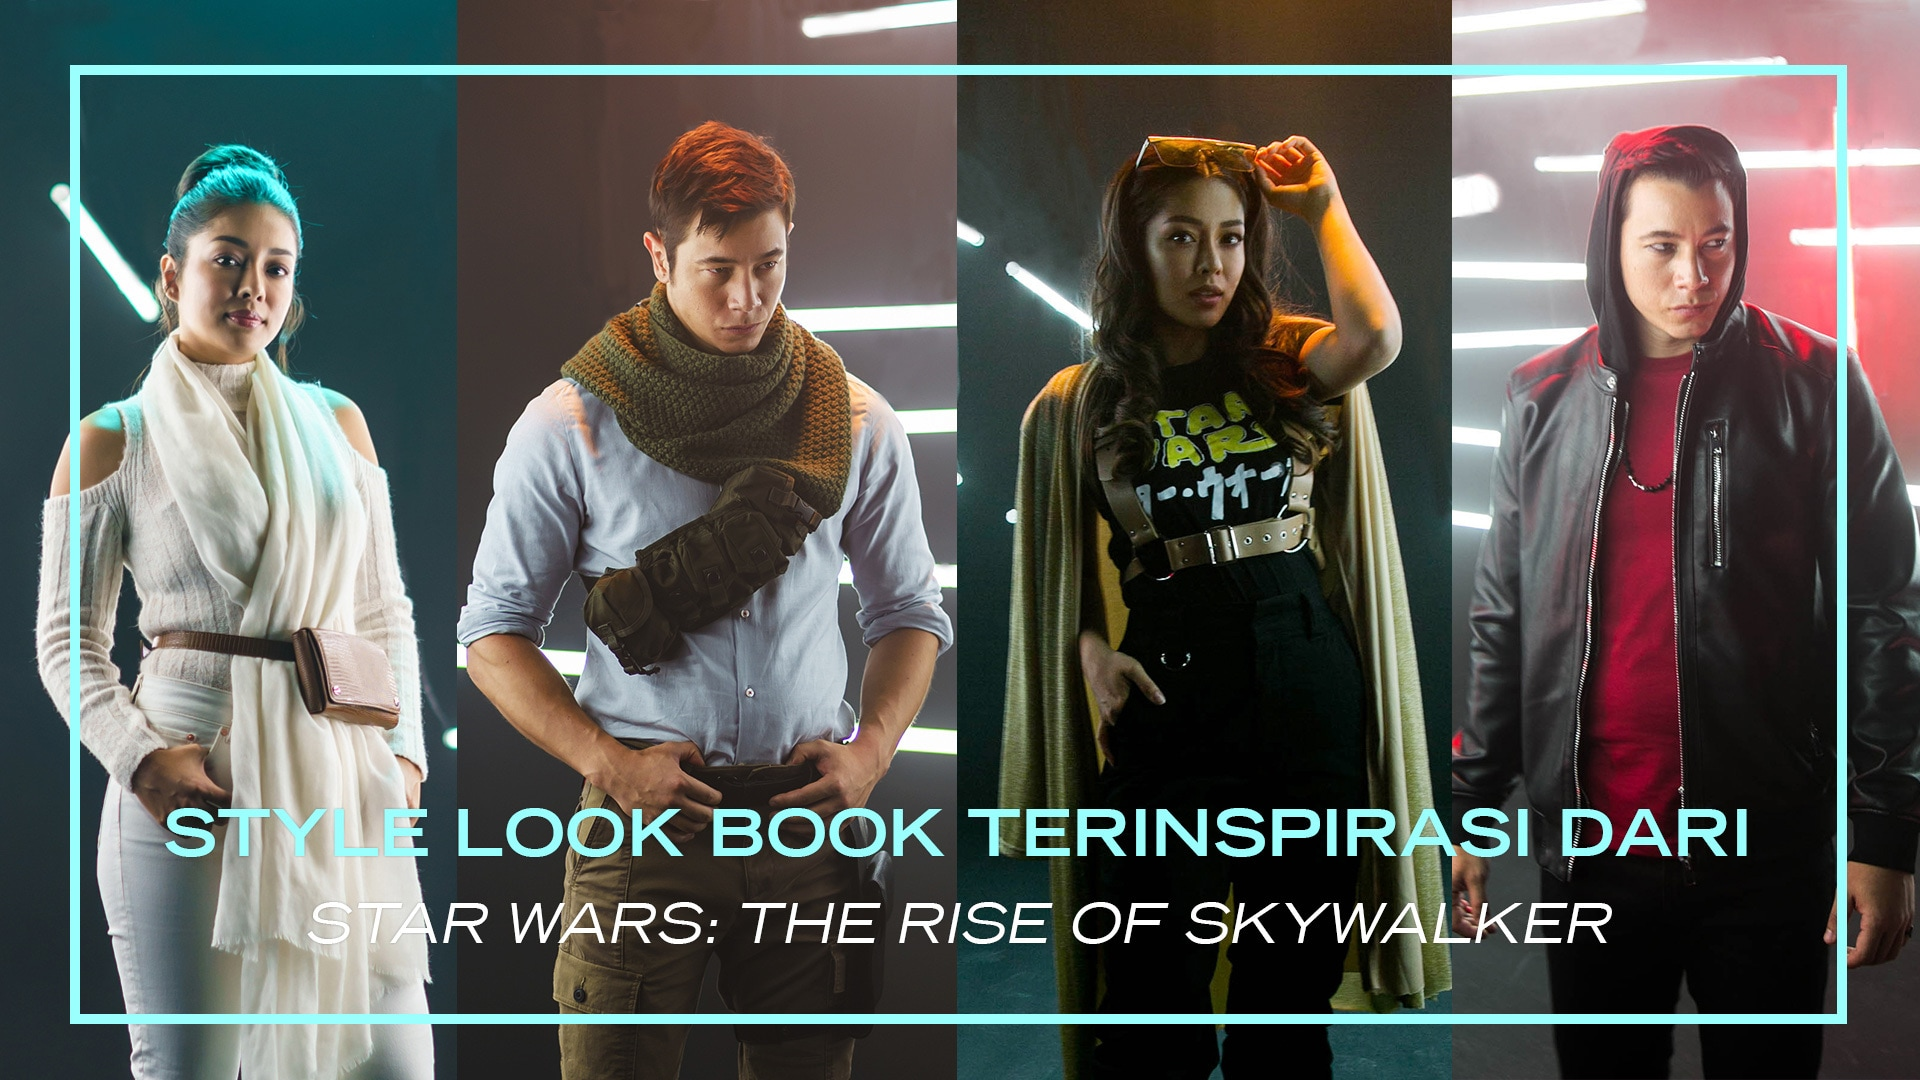 Disney Style: Look Book Inspired By Star Wars: The Rise Of Skywalker